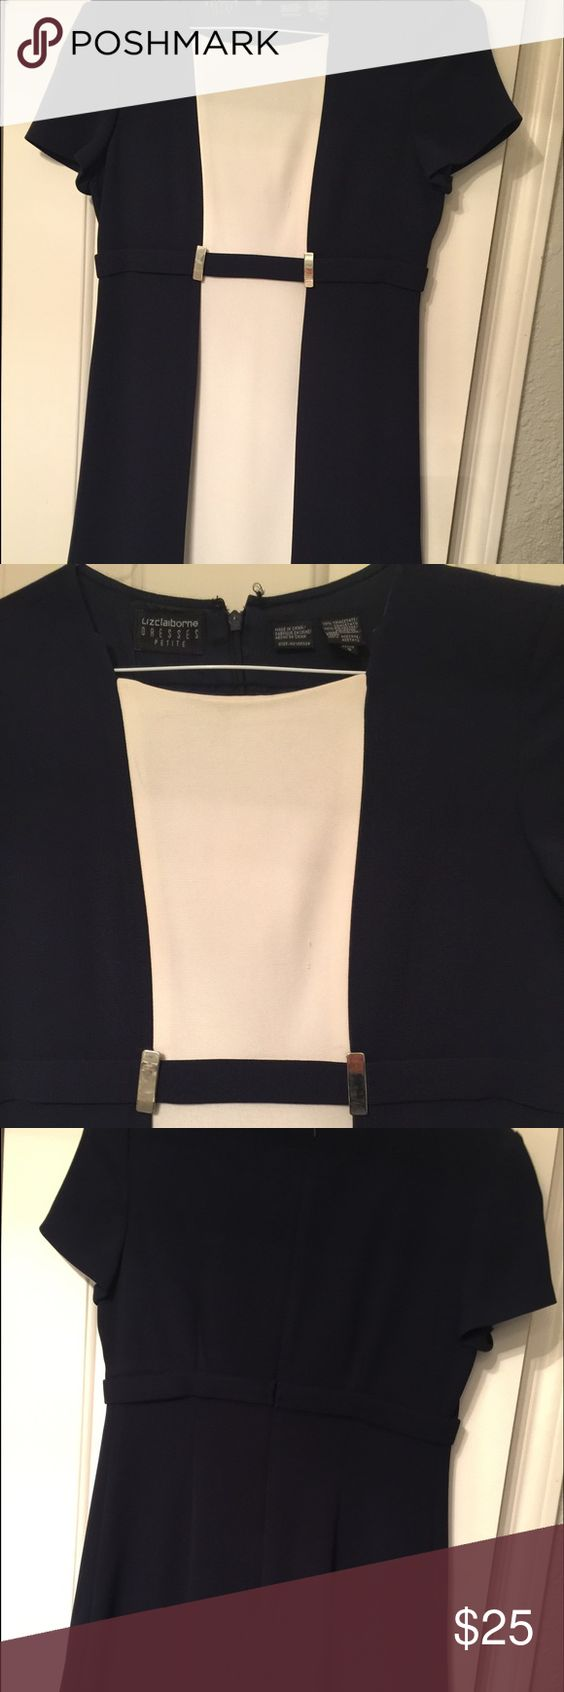 Women's navy blue dress This is a navy blue and white size 8 petite dress that zips up in the back Liz Claiborne Dresses Midi